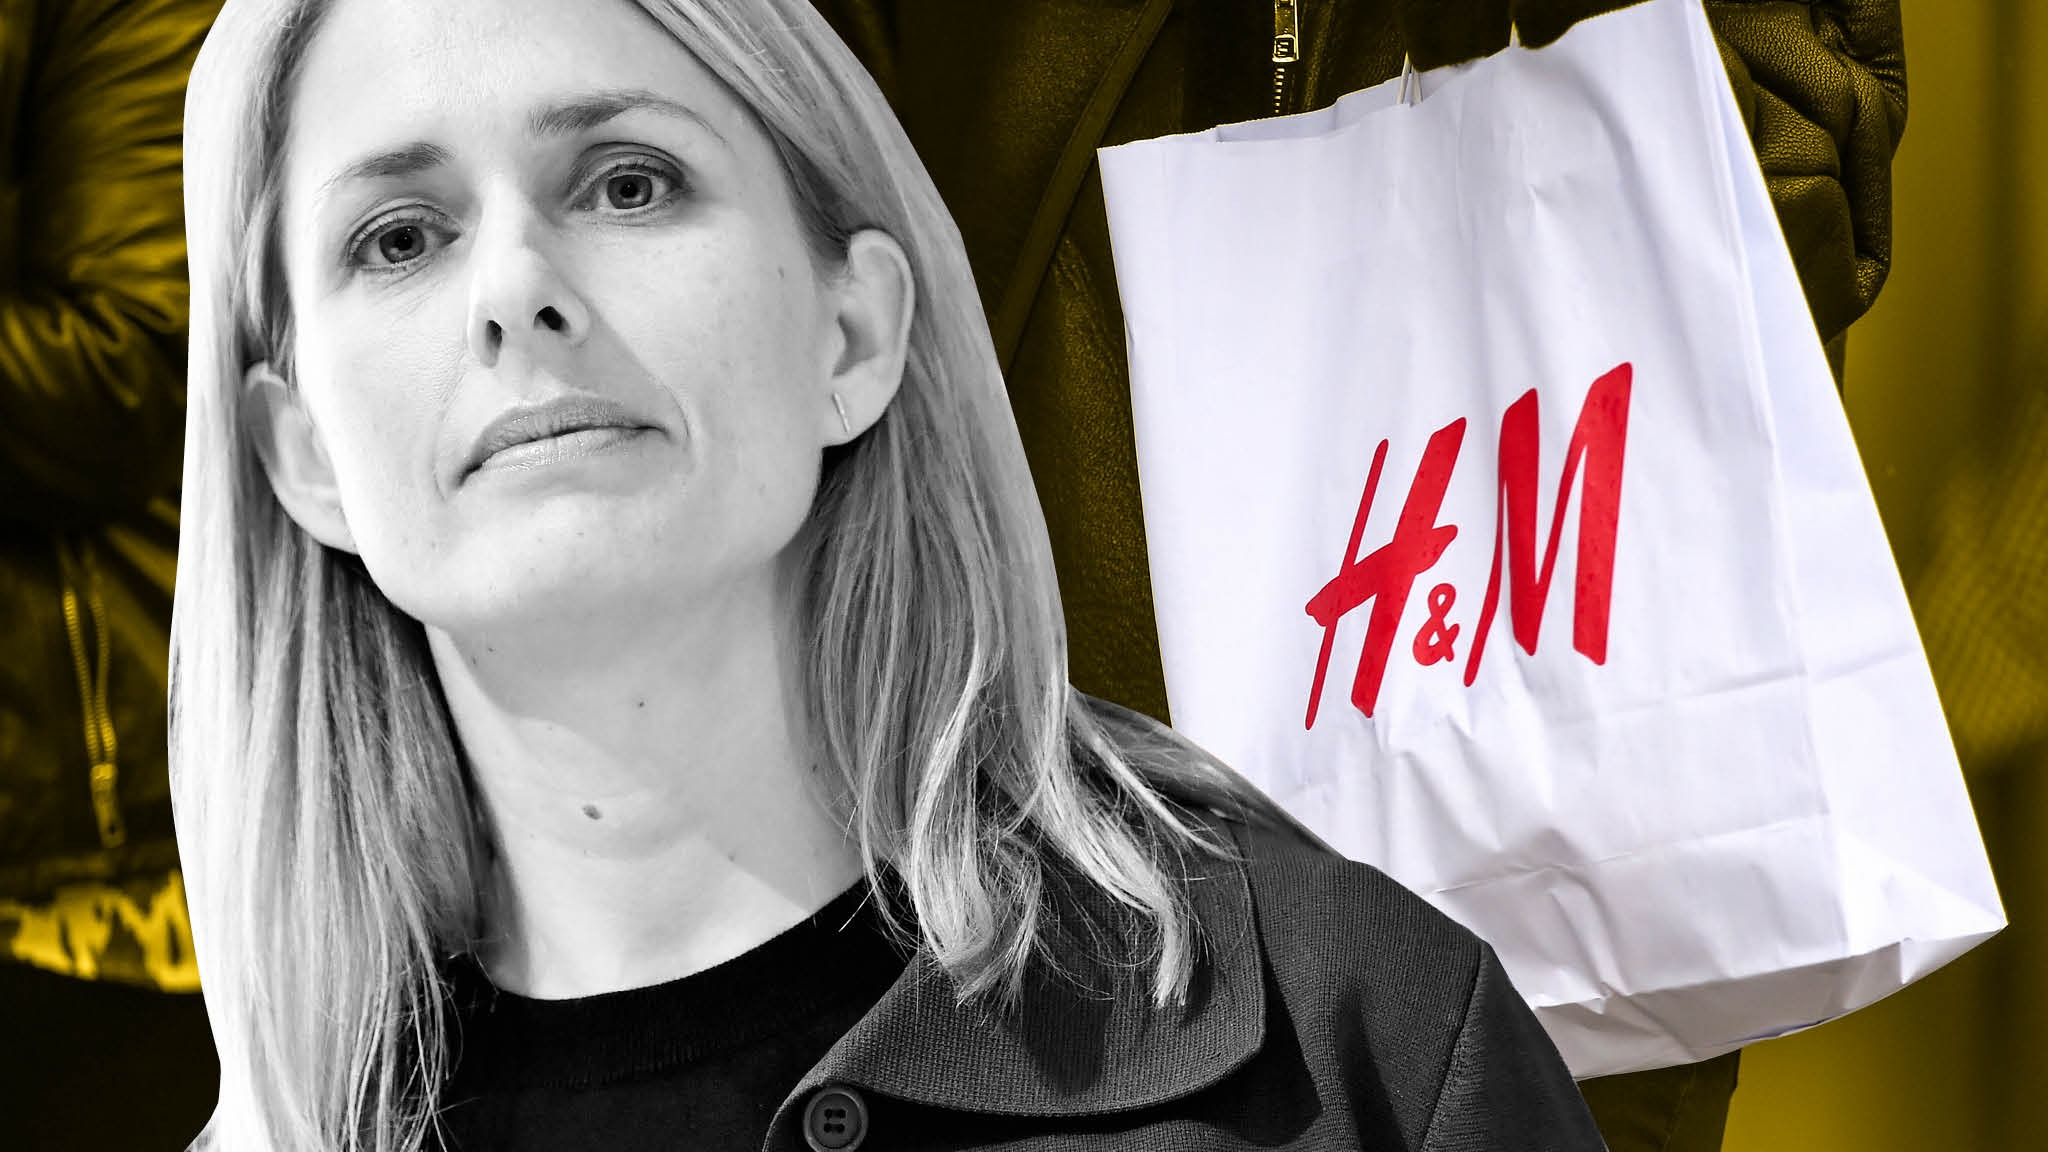 ft.com - Richard Milne, Nordic and Baltic Correspondent - H&M experiments as it refashions stores after the pandemic